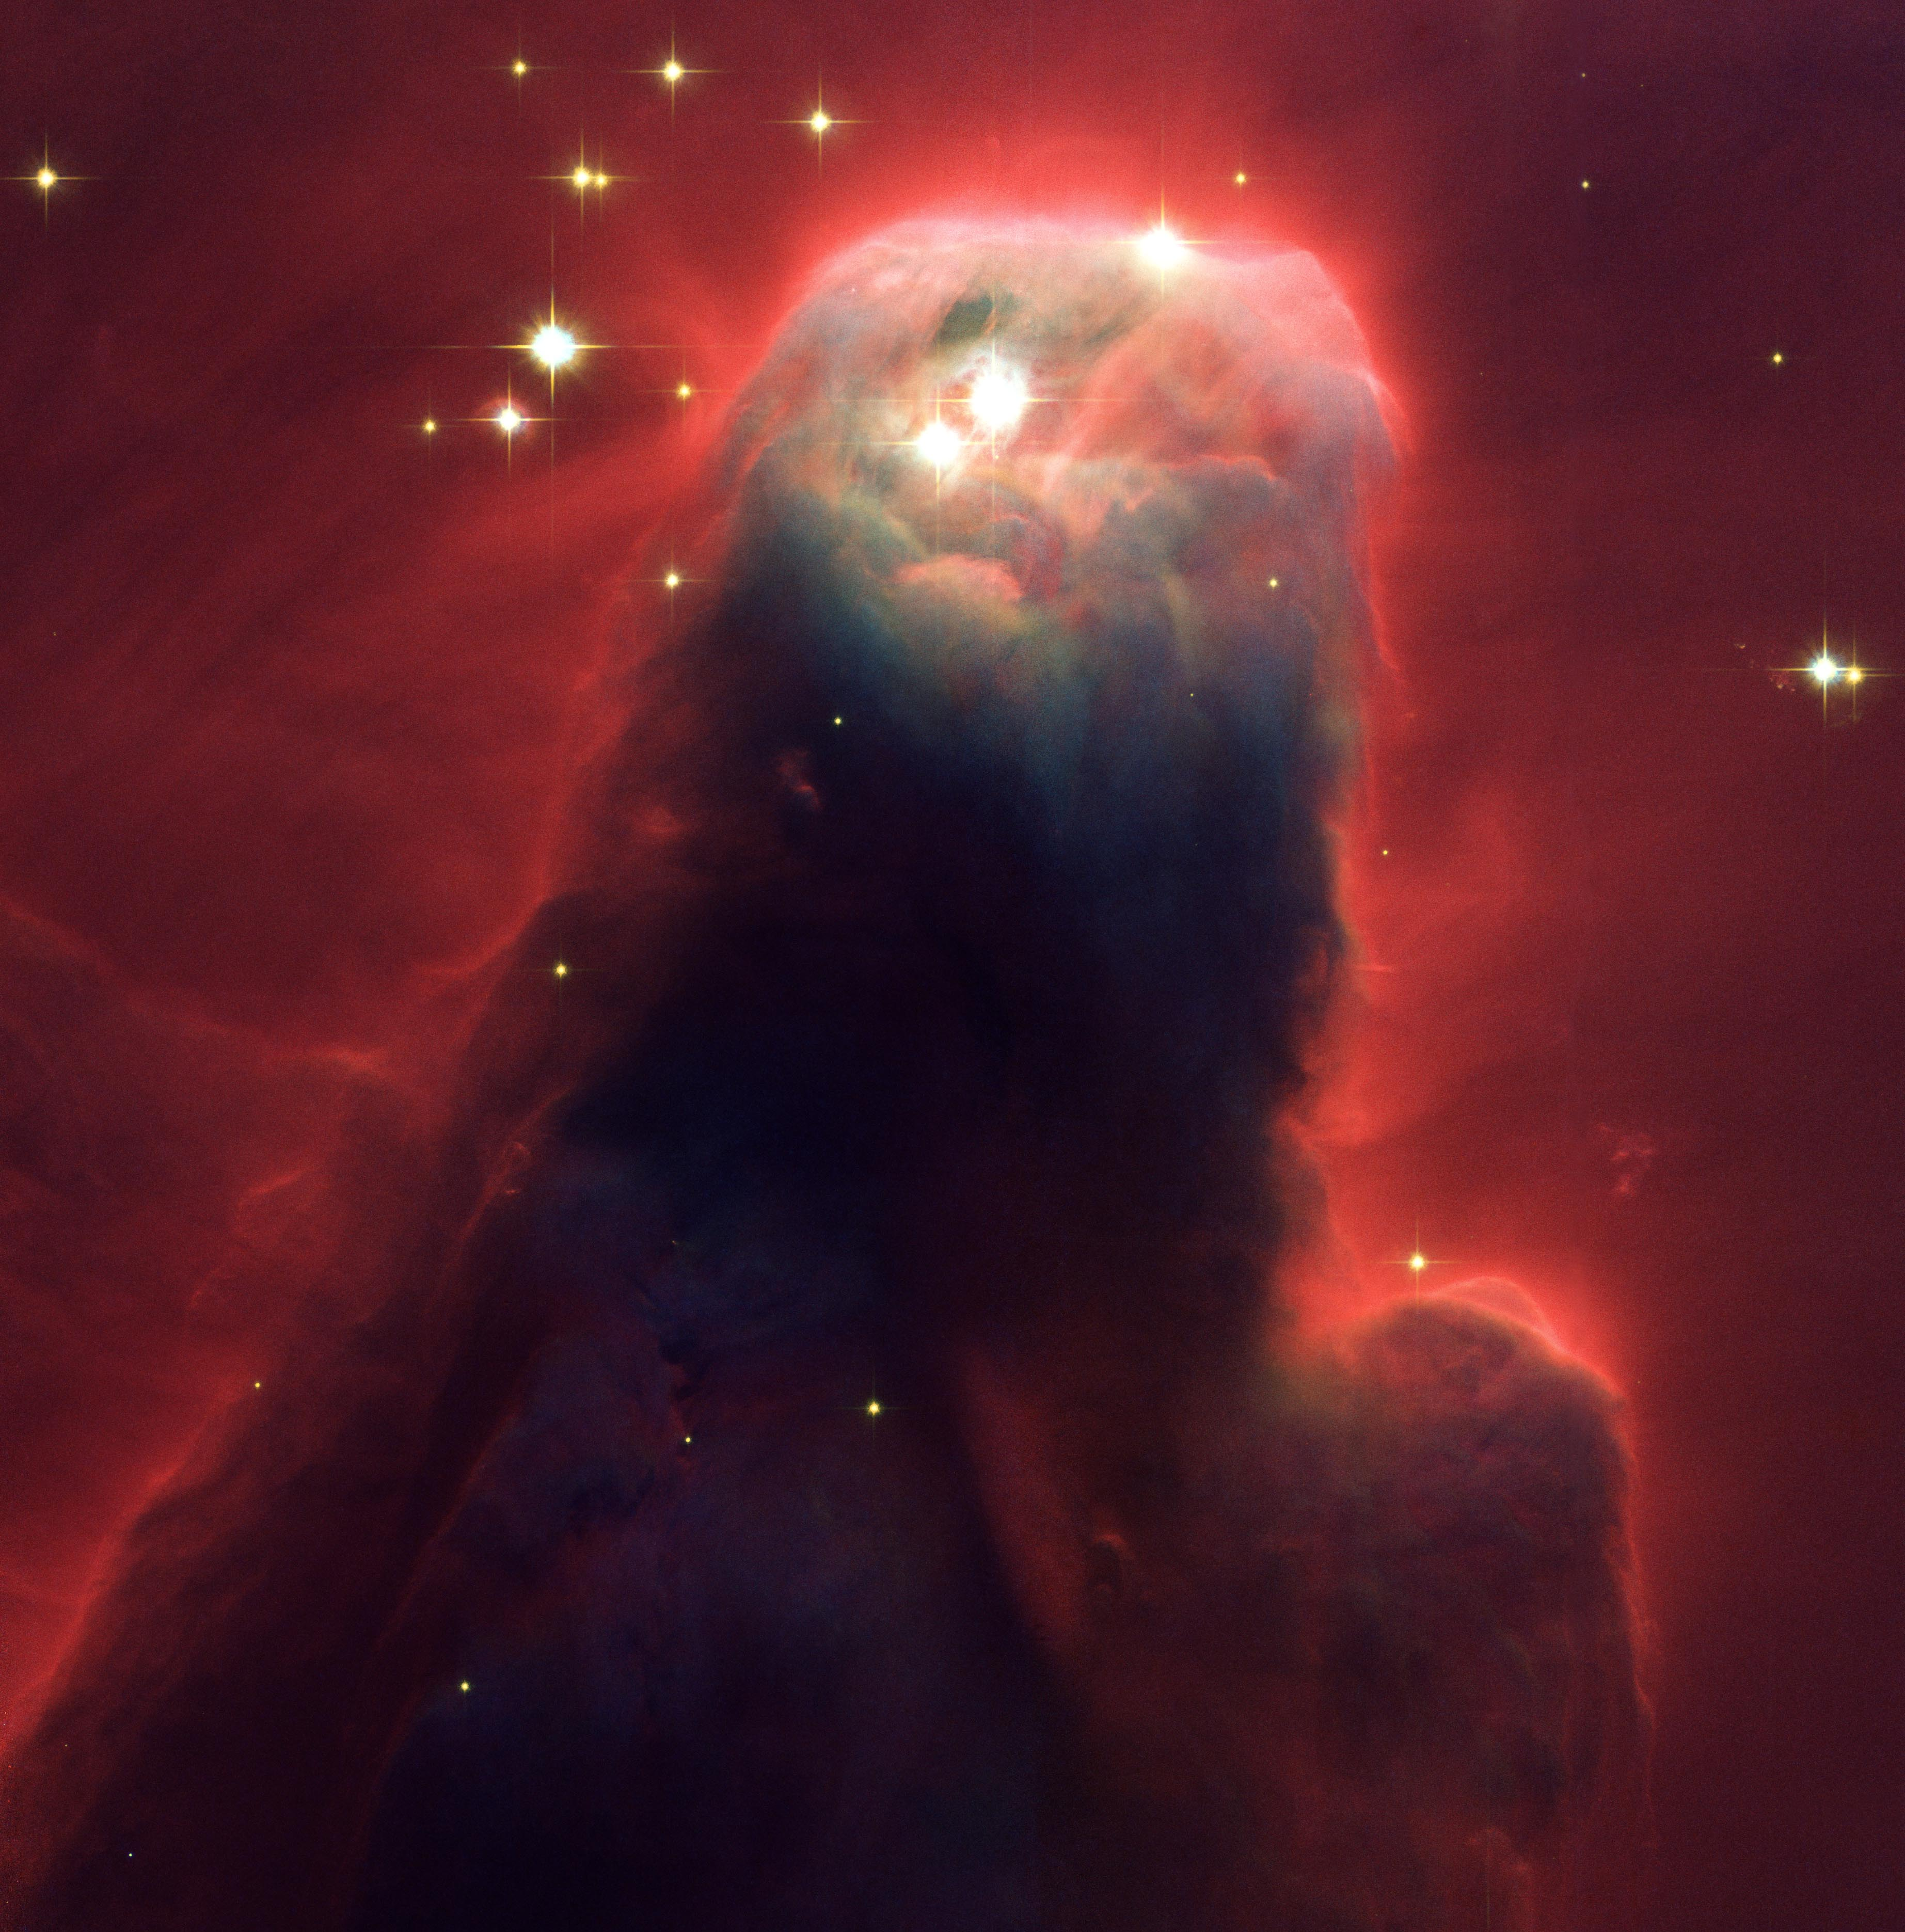 Hubble Advanced Camera Images